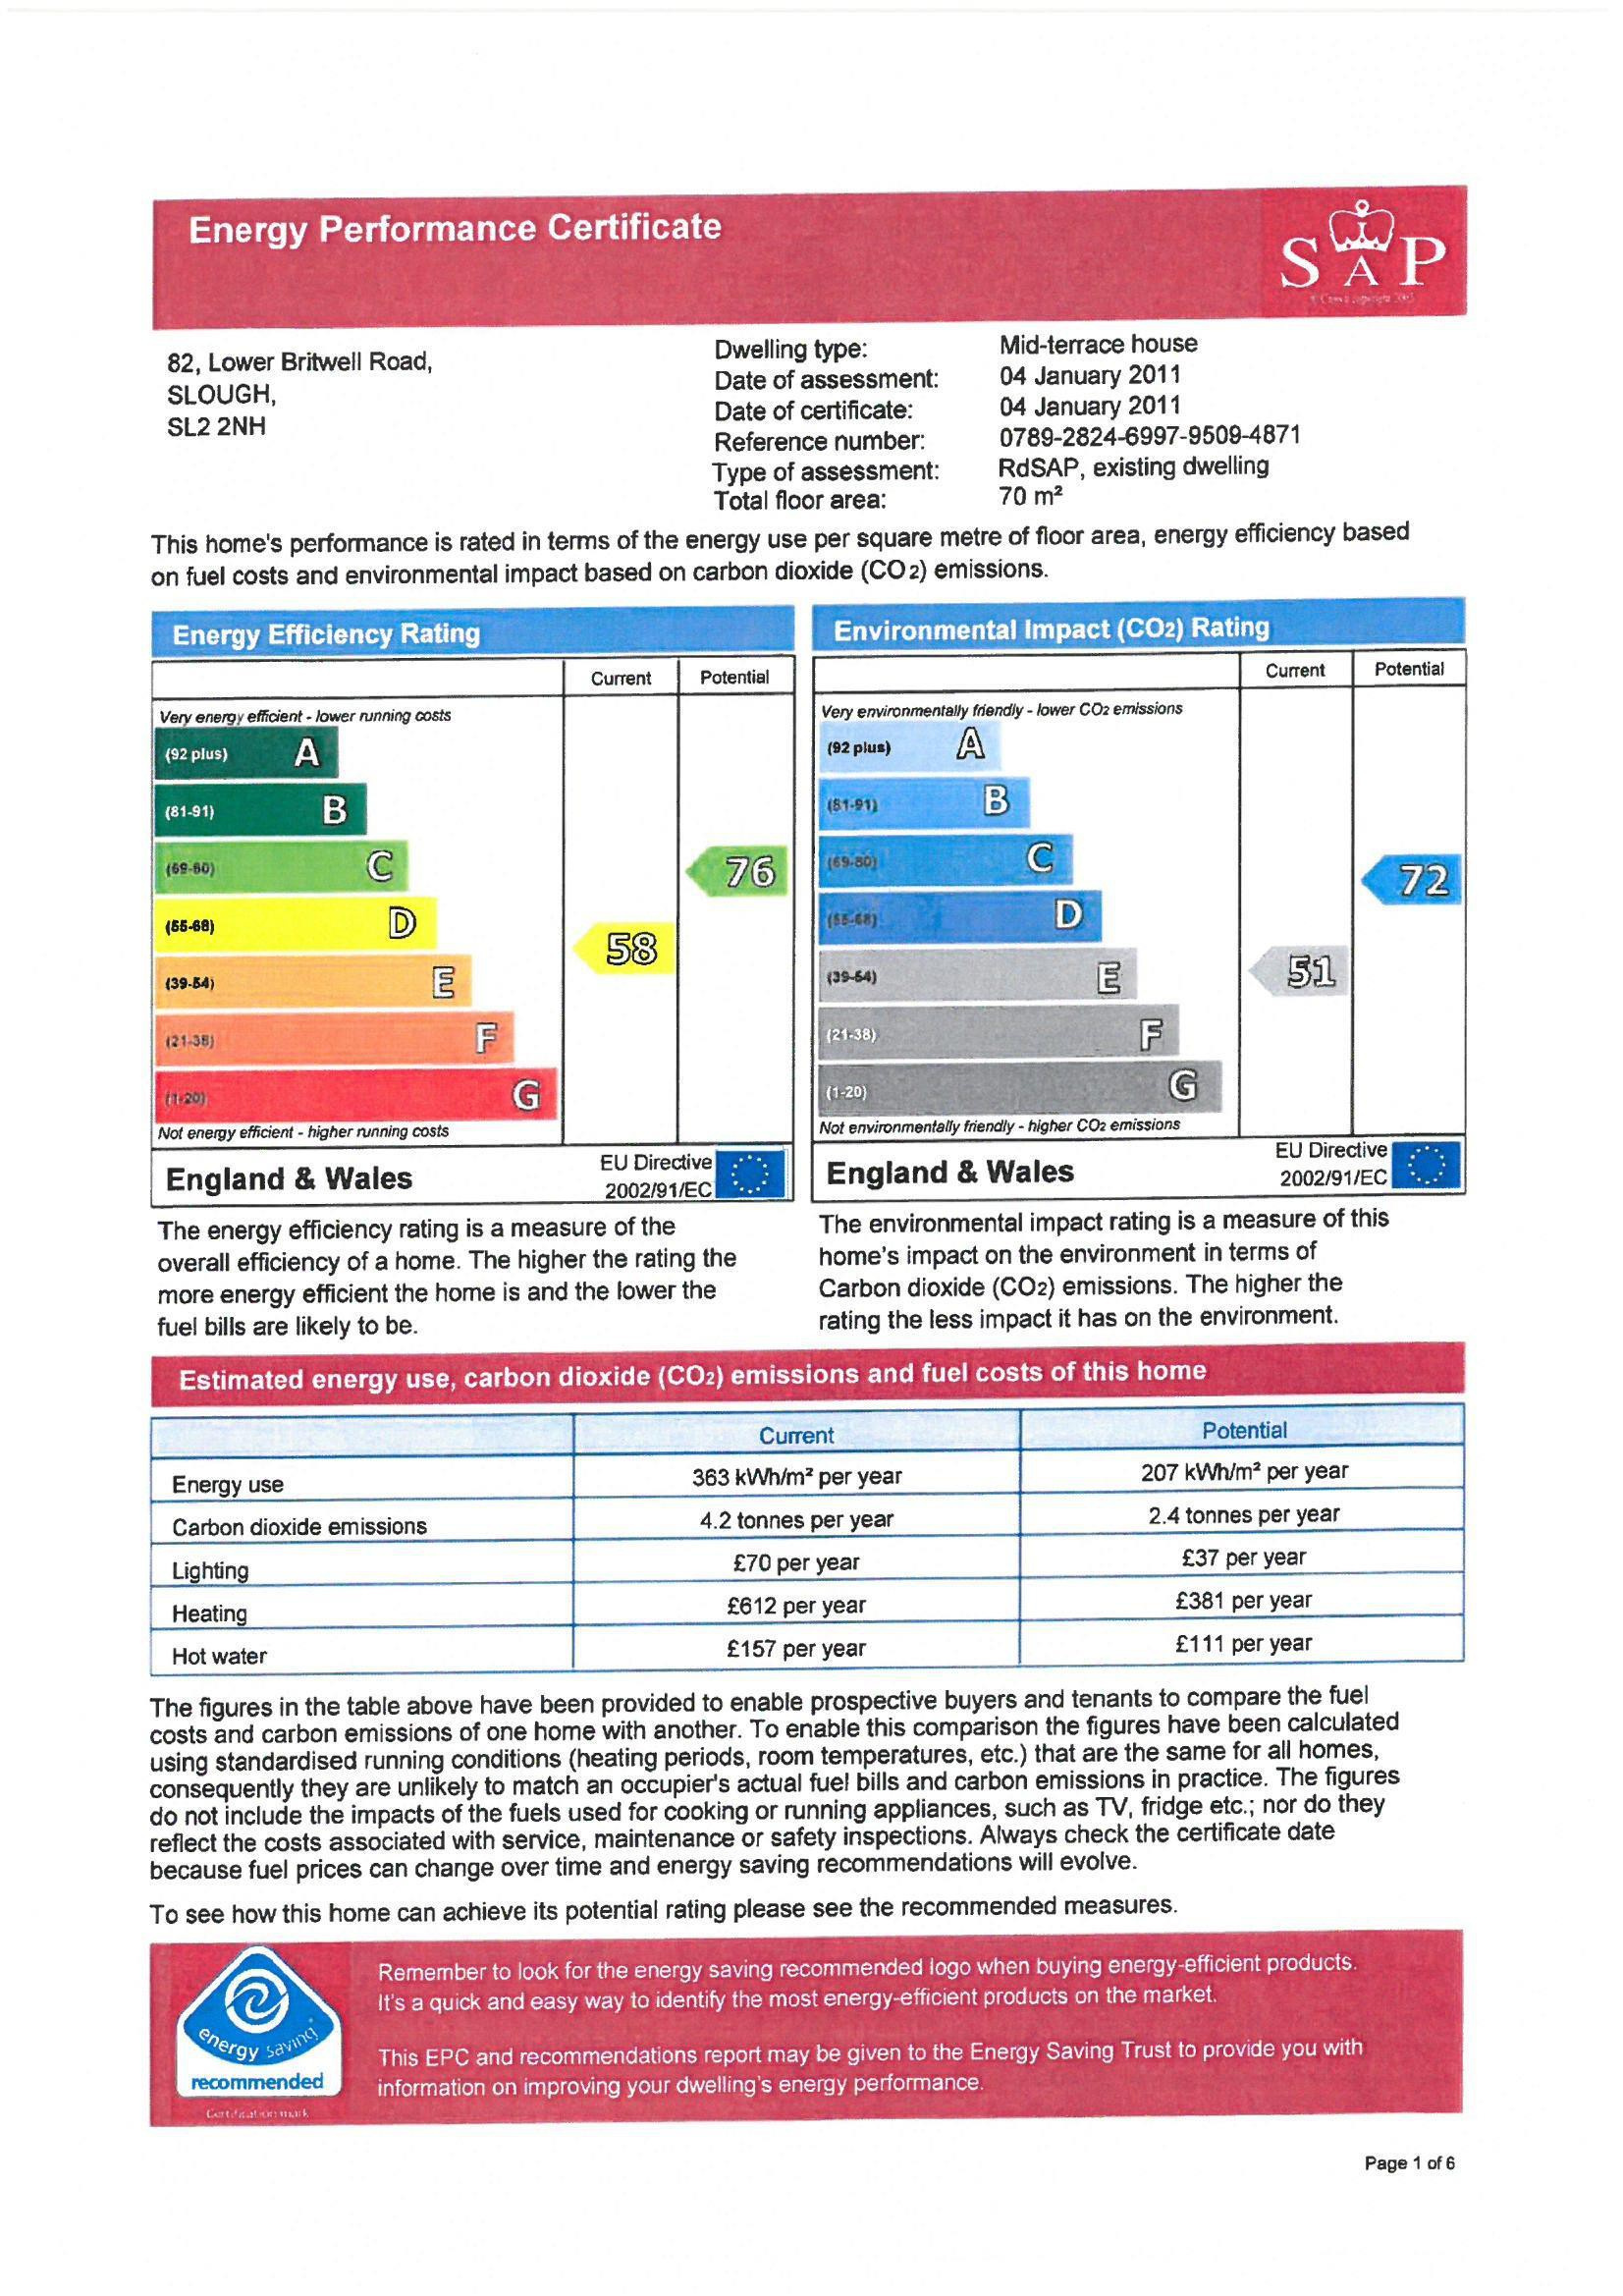 EPC Graph for 82 Lower Britwell Road, Slough, Berkshire, SL2 2NH